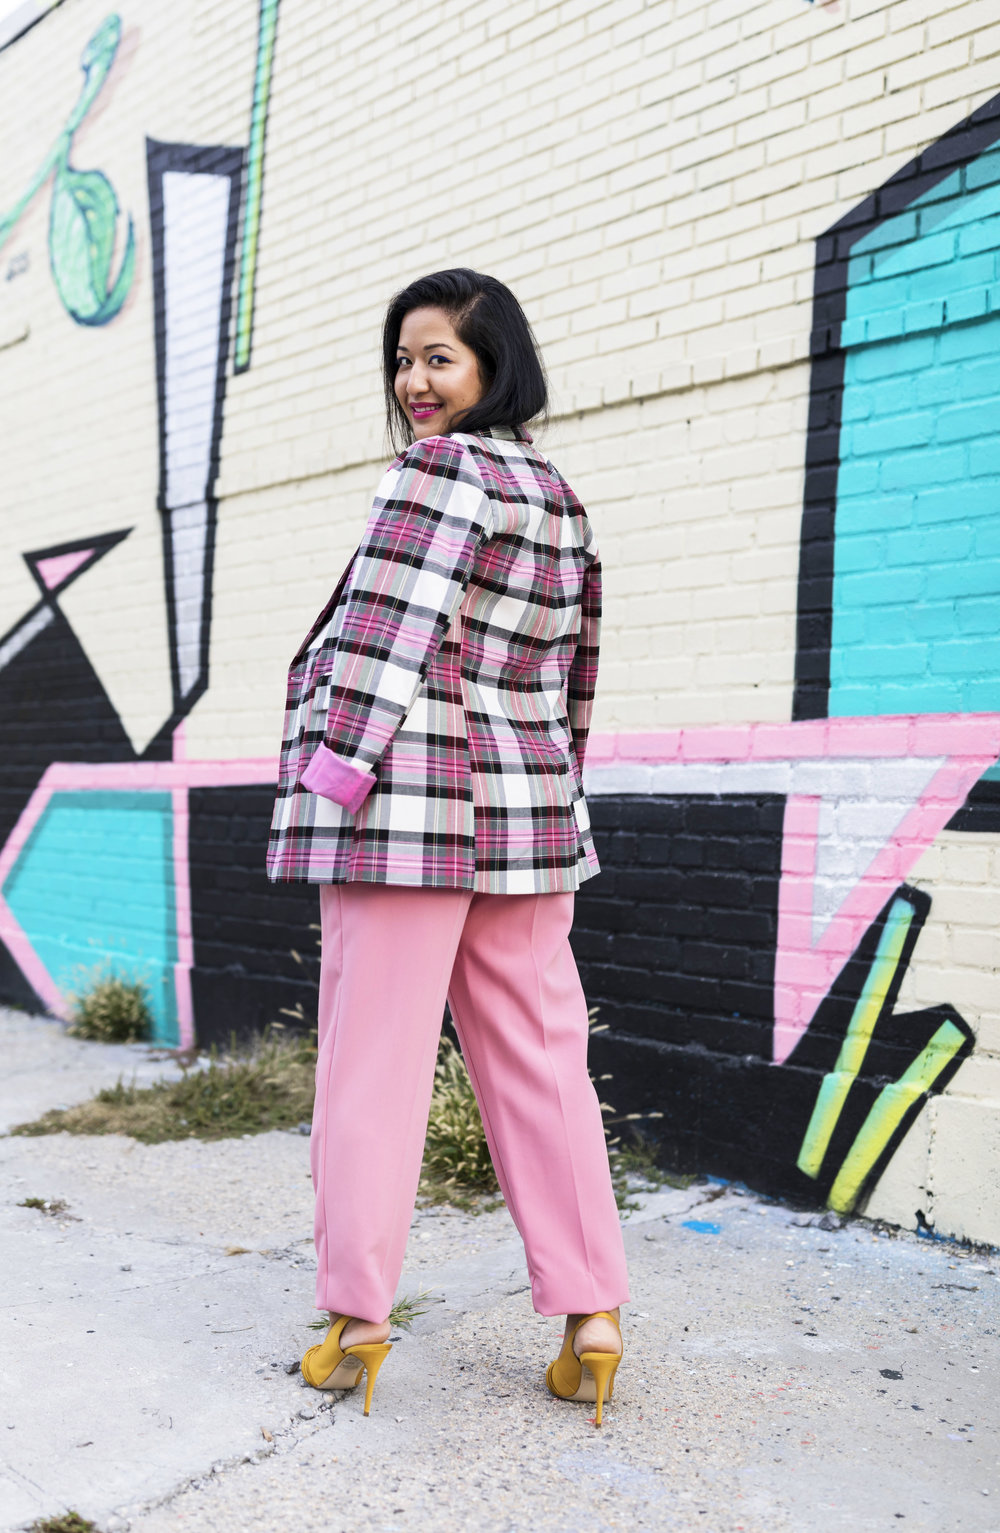 Krity S x Plaid Pink Suit5.jpg